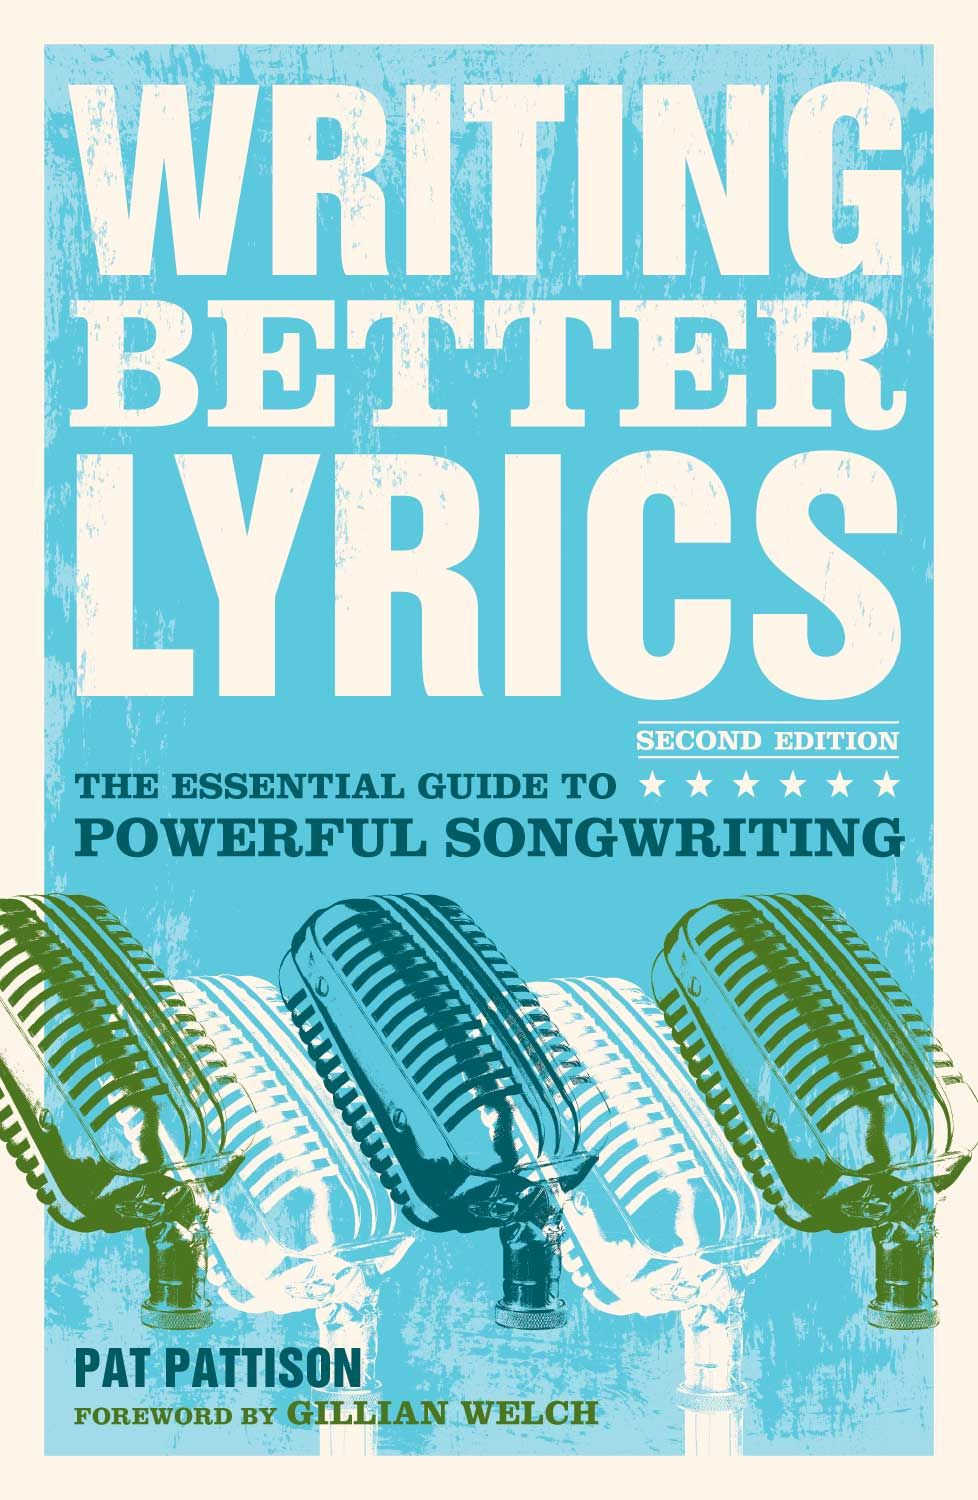 This a very good book for anyone who wants to improve their lyric writing. Pat Pattison is awesome!